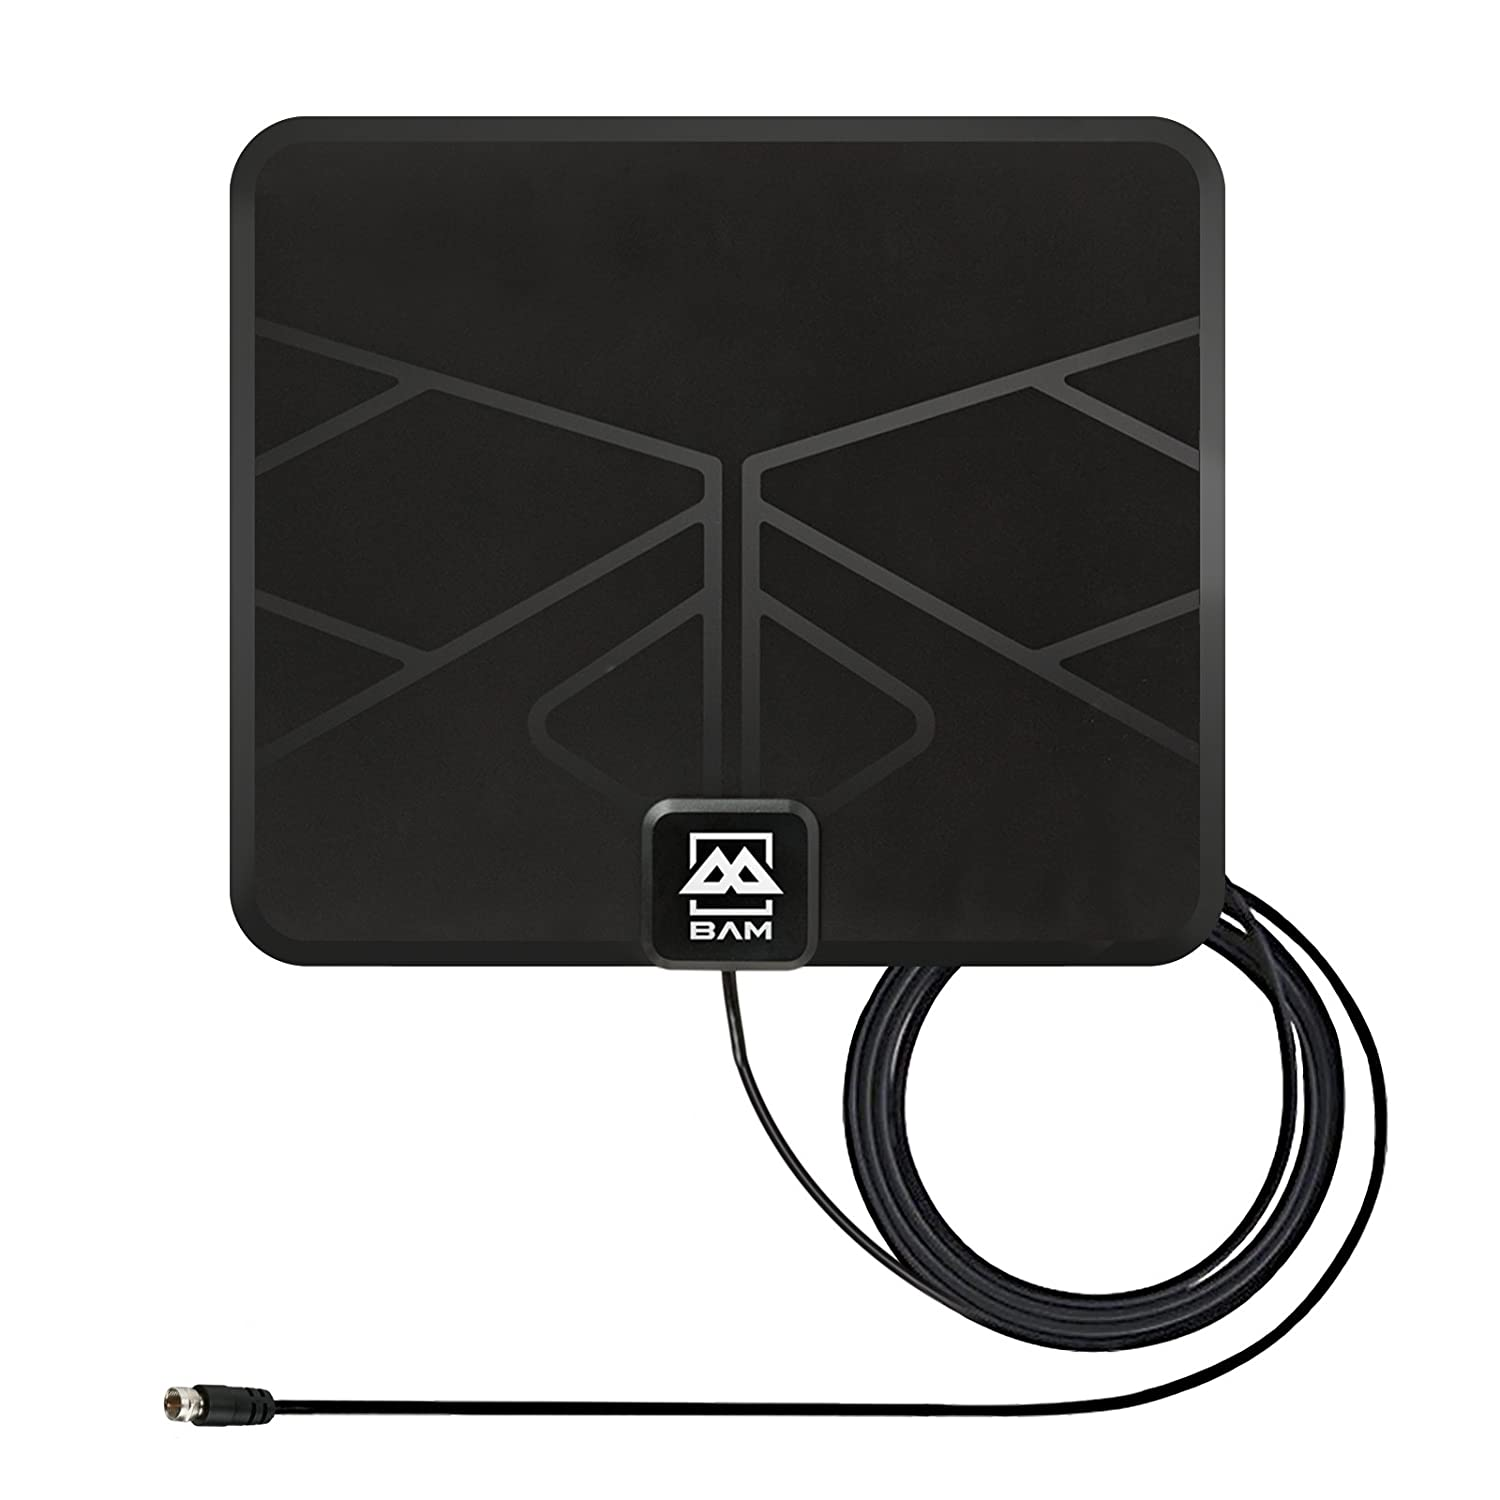 Amazon.com: BAM 25-Mile Digital HD TV Antenna - Indoor OTA (Over the Air) VHF / UHF HDTV Receiver: Home Audio & Theater